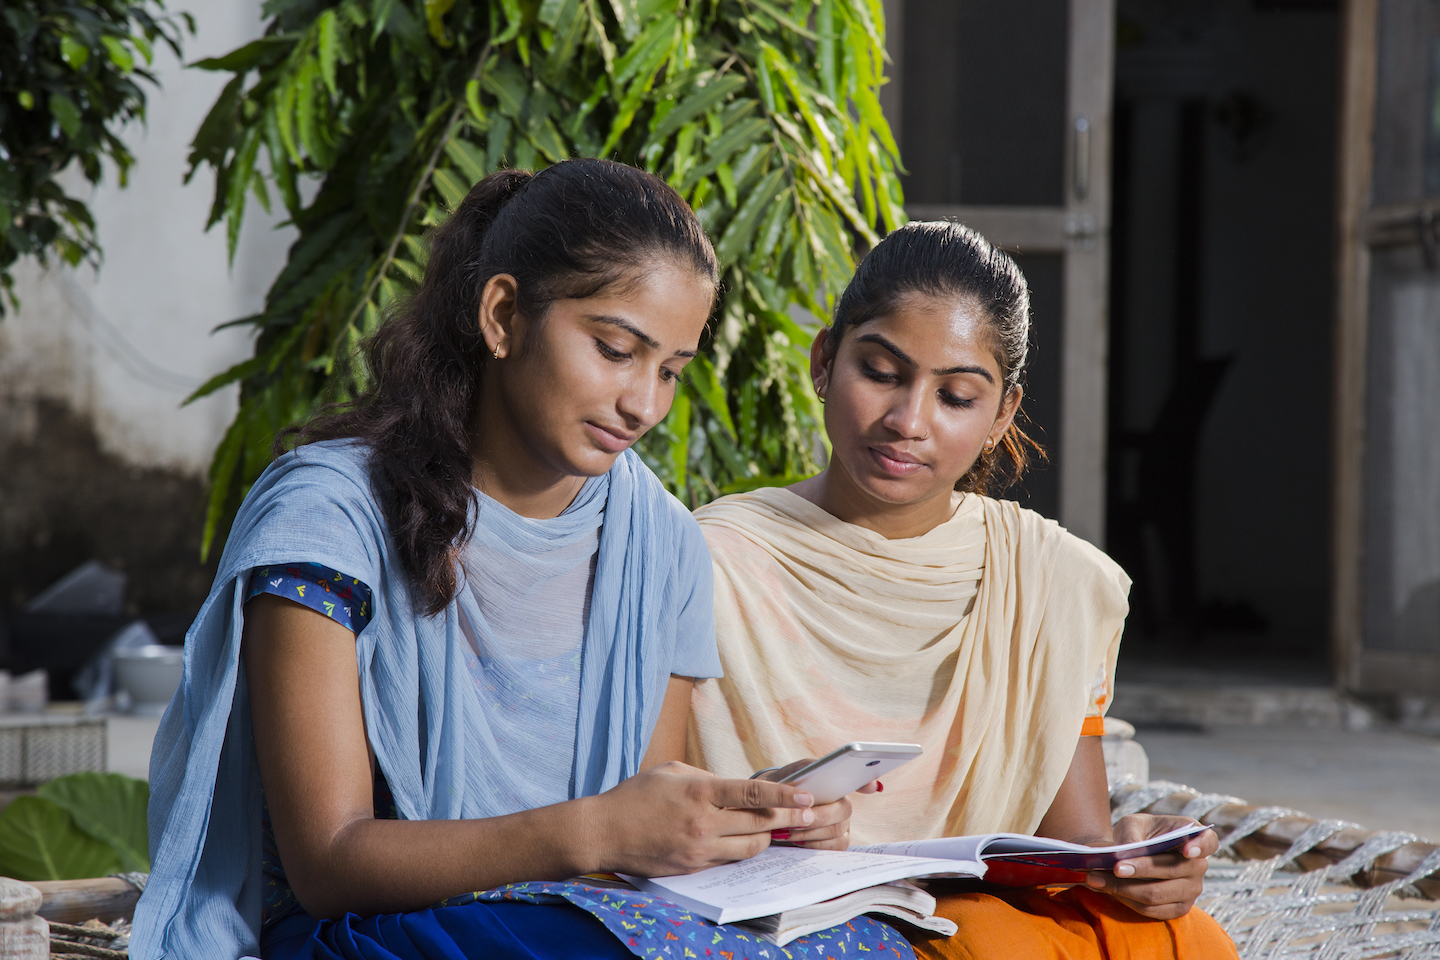 Two young women, studying and looking at a smartphone